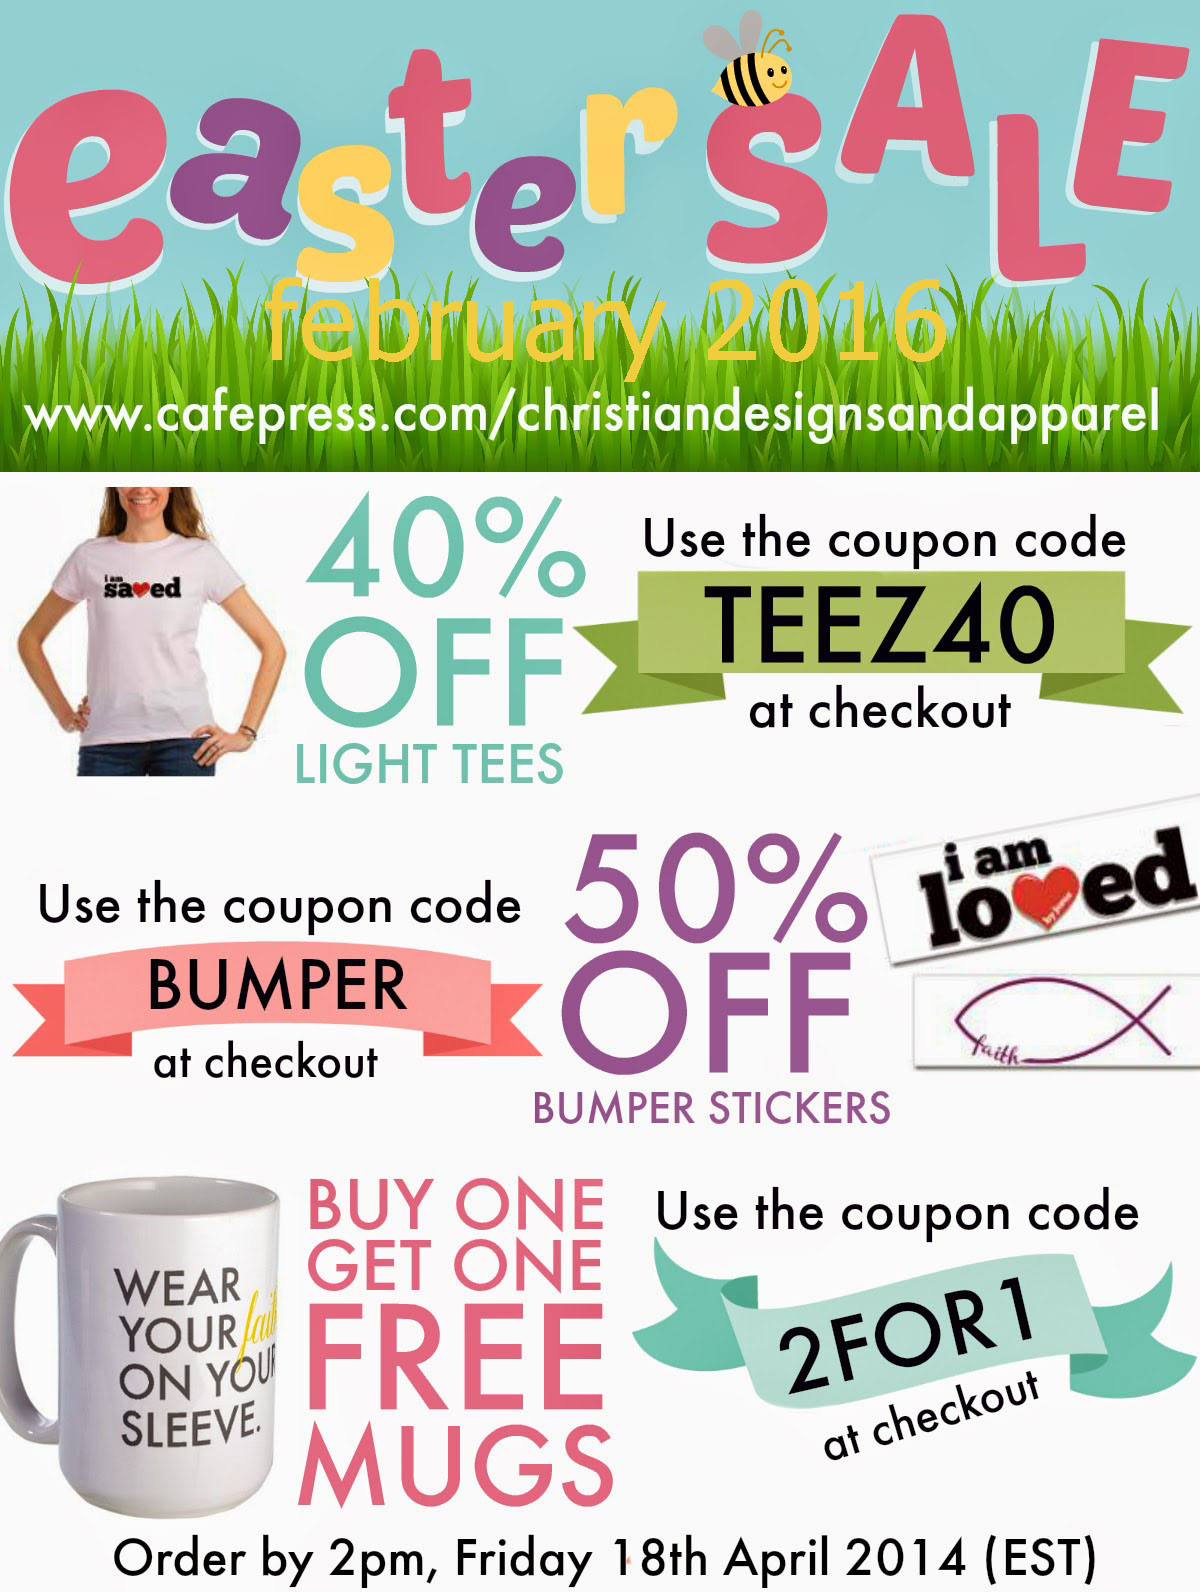 Cafepress com coupon code